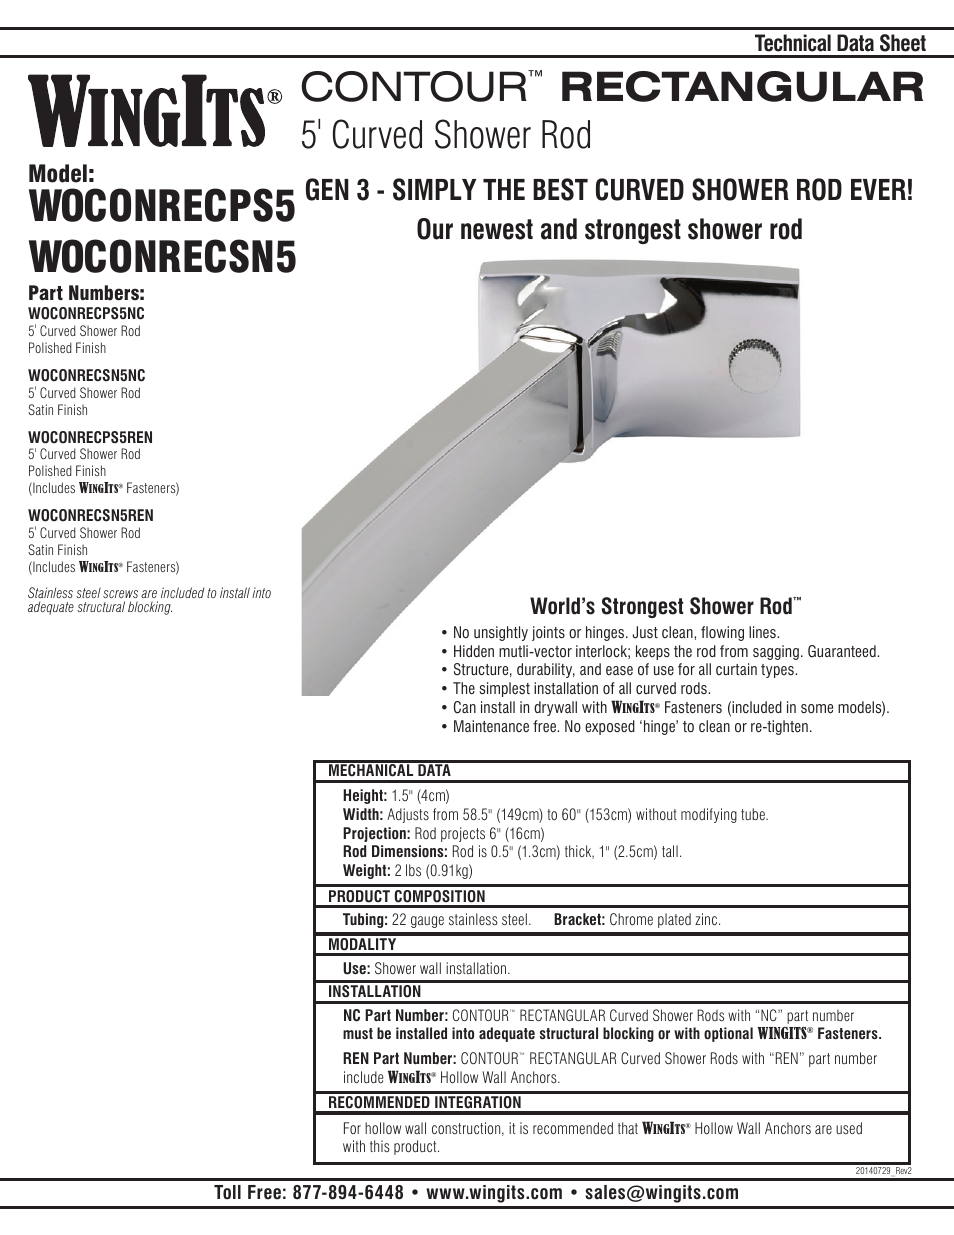 WINGITS CONTOUR Curved Shower Rod WOCONREC5 User Manual | 2 pages